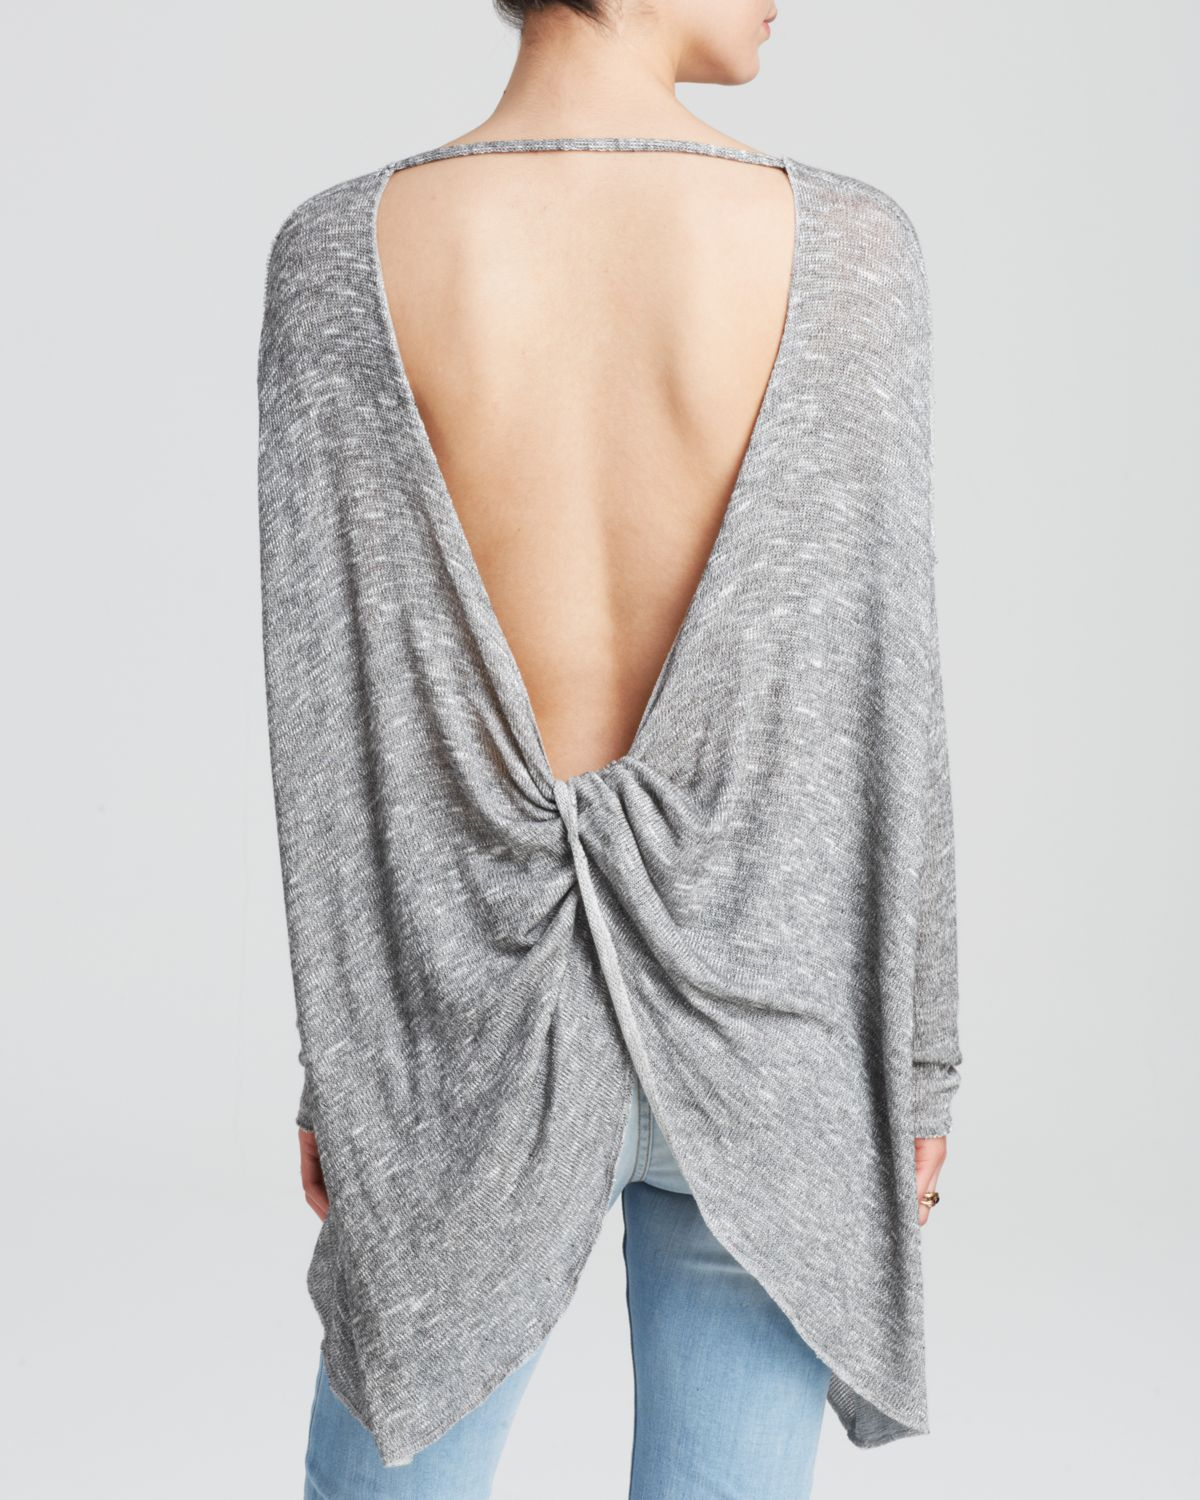 bd2c8ec18 Lyst - Free People Sweater - Chasing You Shadow Hacci in Gray